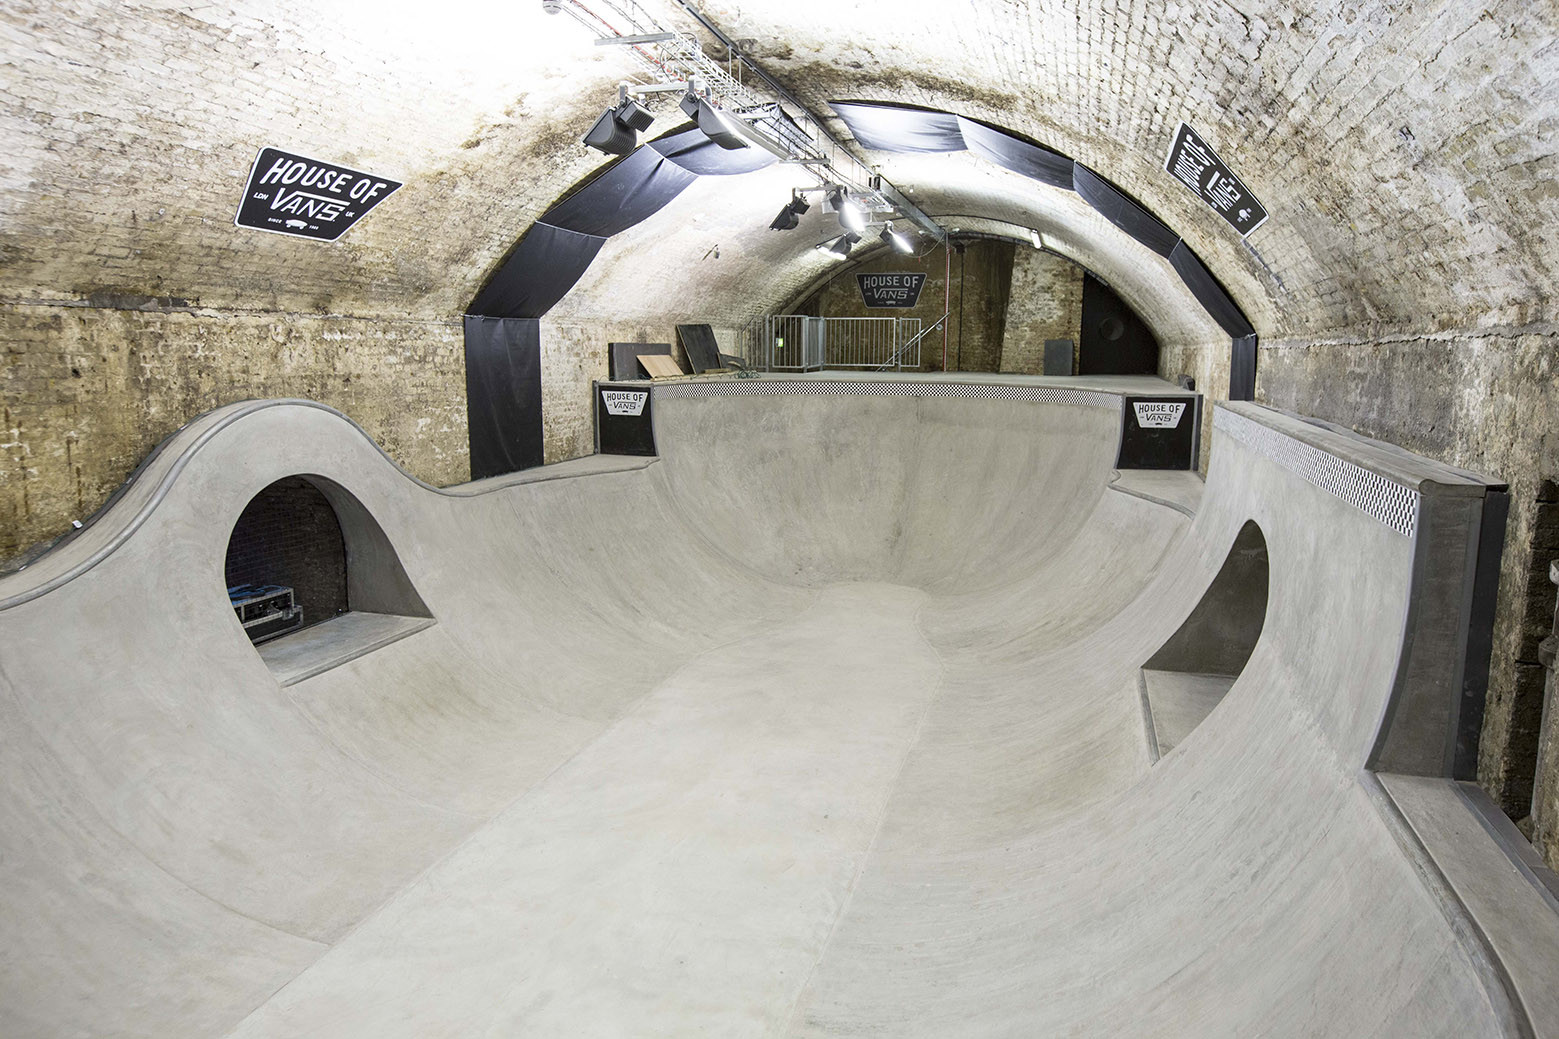 House_of_Vans_London_Skatepark_(9).jpg